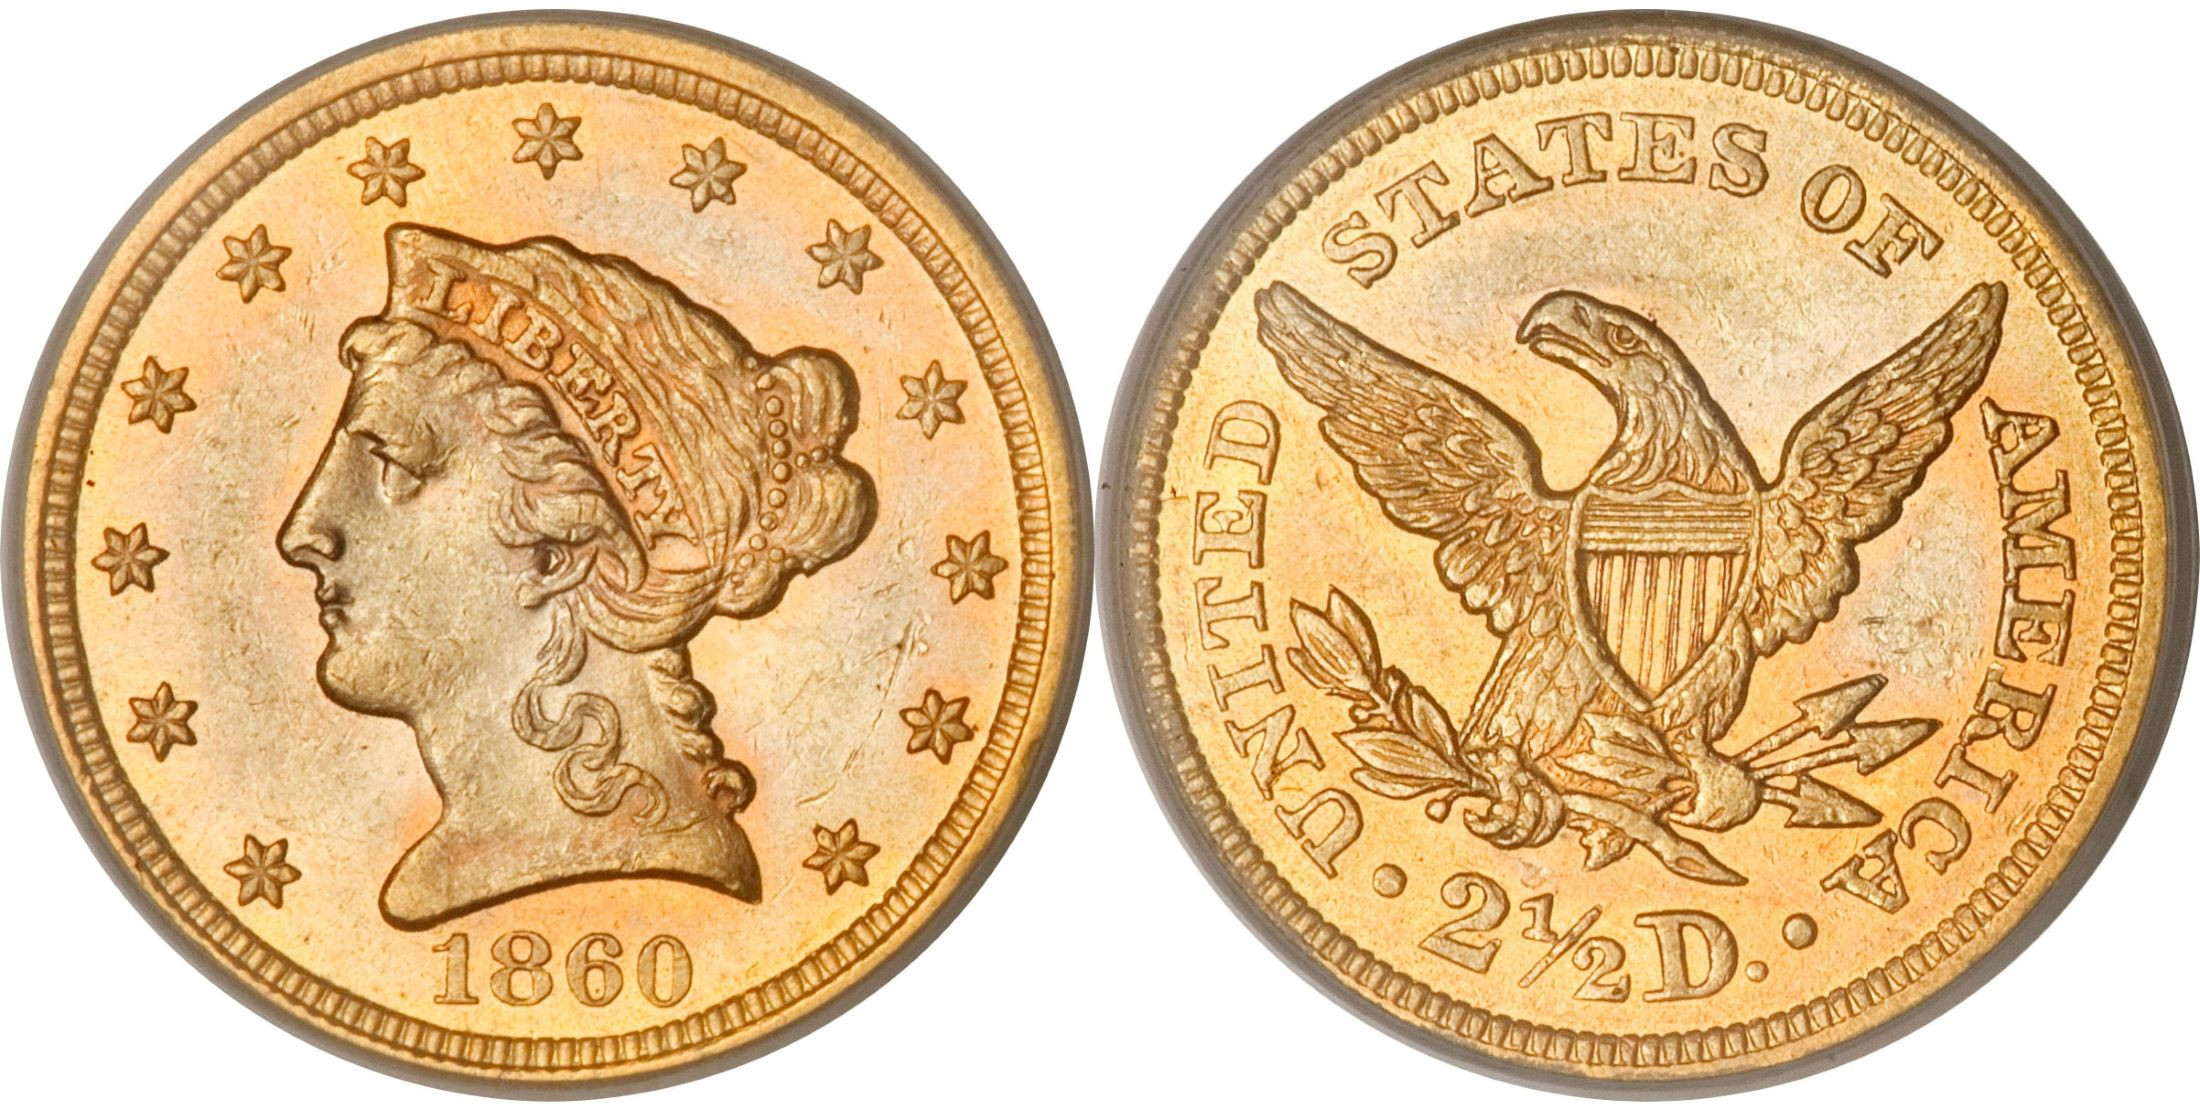 """PCGS MS61<BR>Image courtesy of <a href=""""http://www.ha.com"""" target=""""_blank"""">Heritage Numismatic Auctions</a>"""